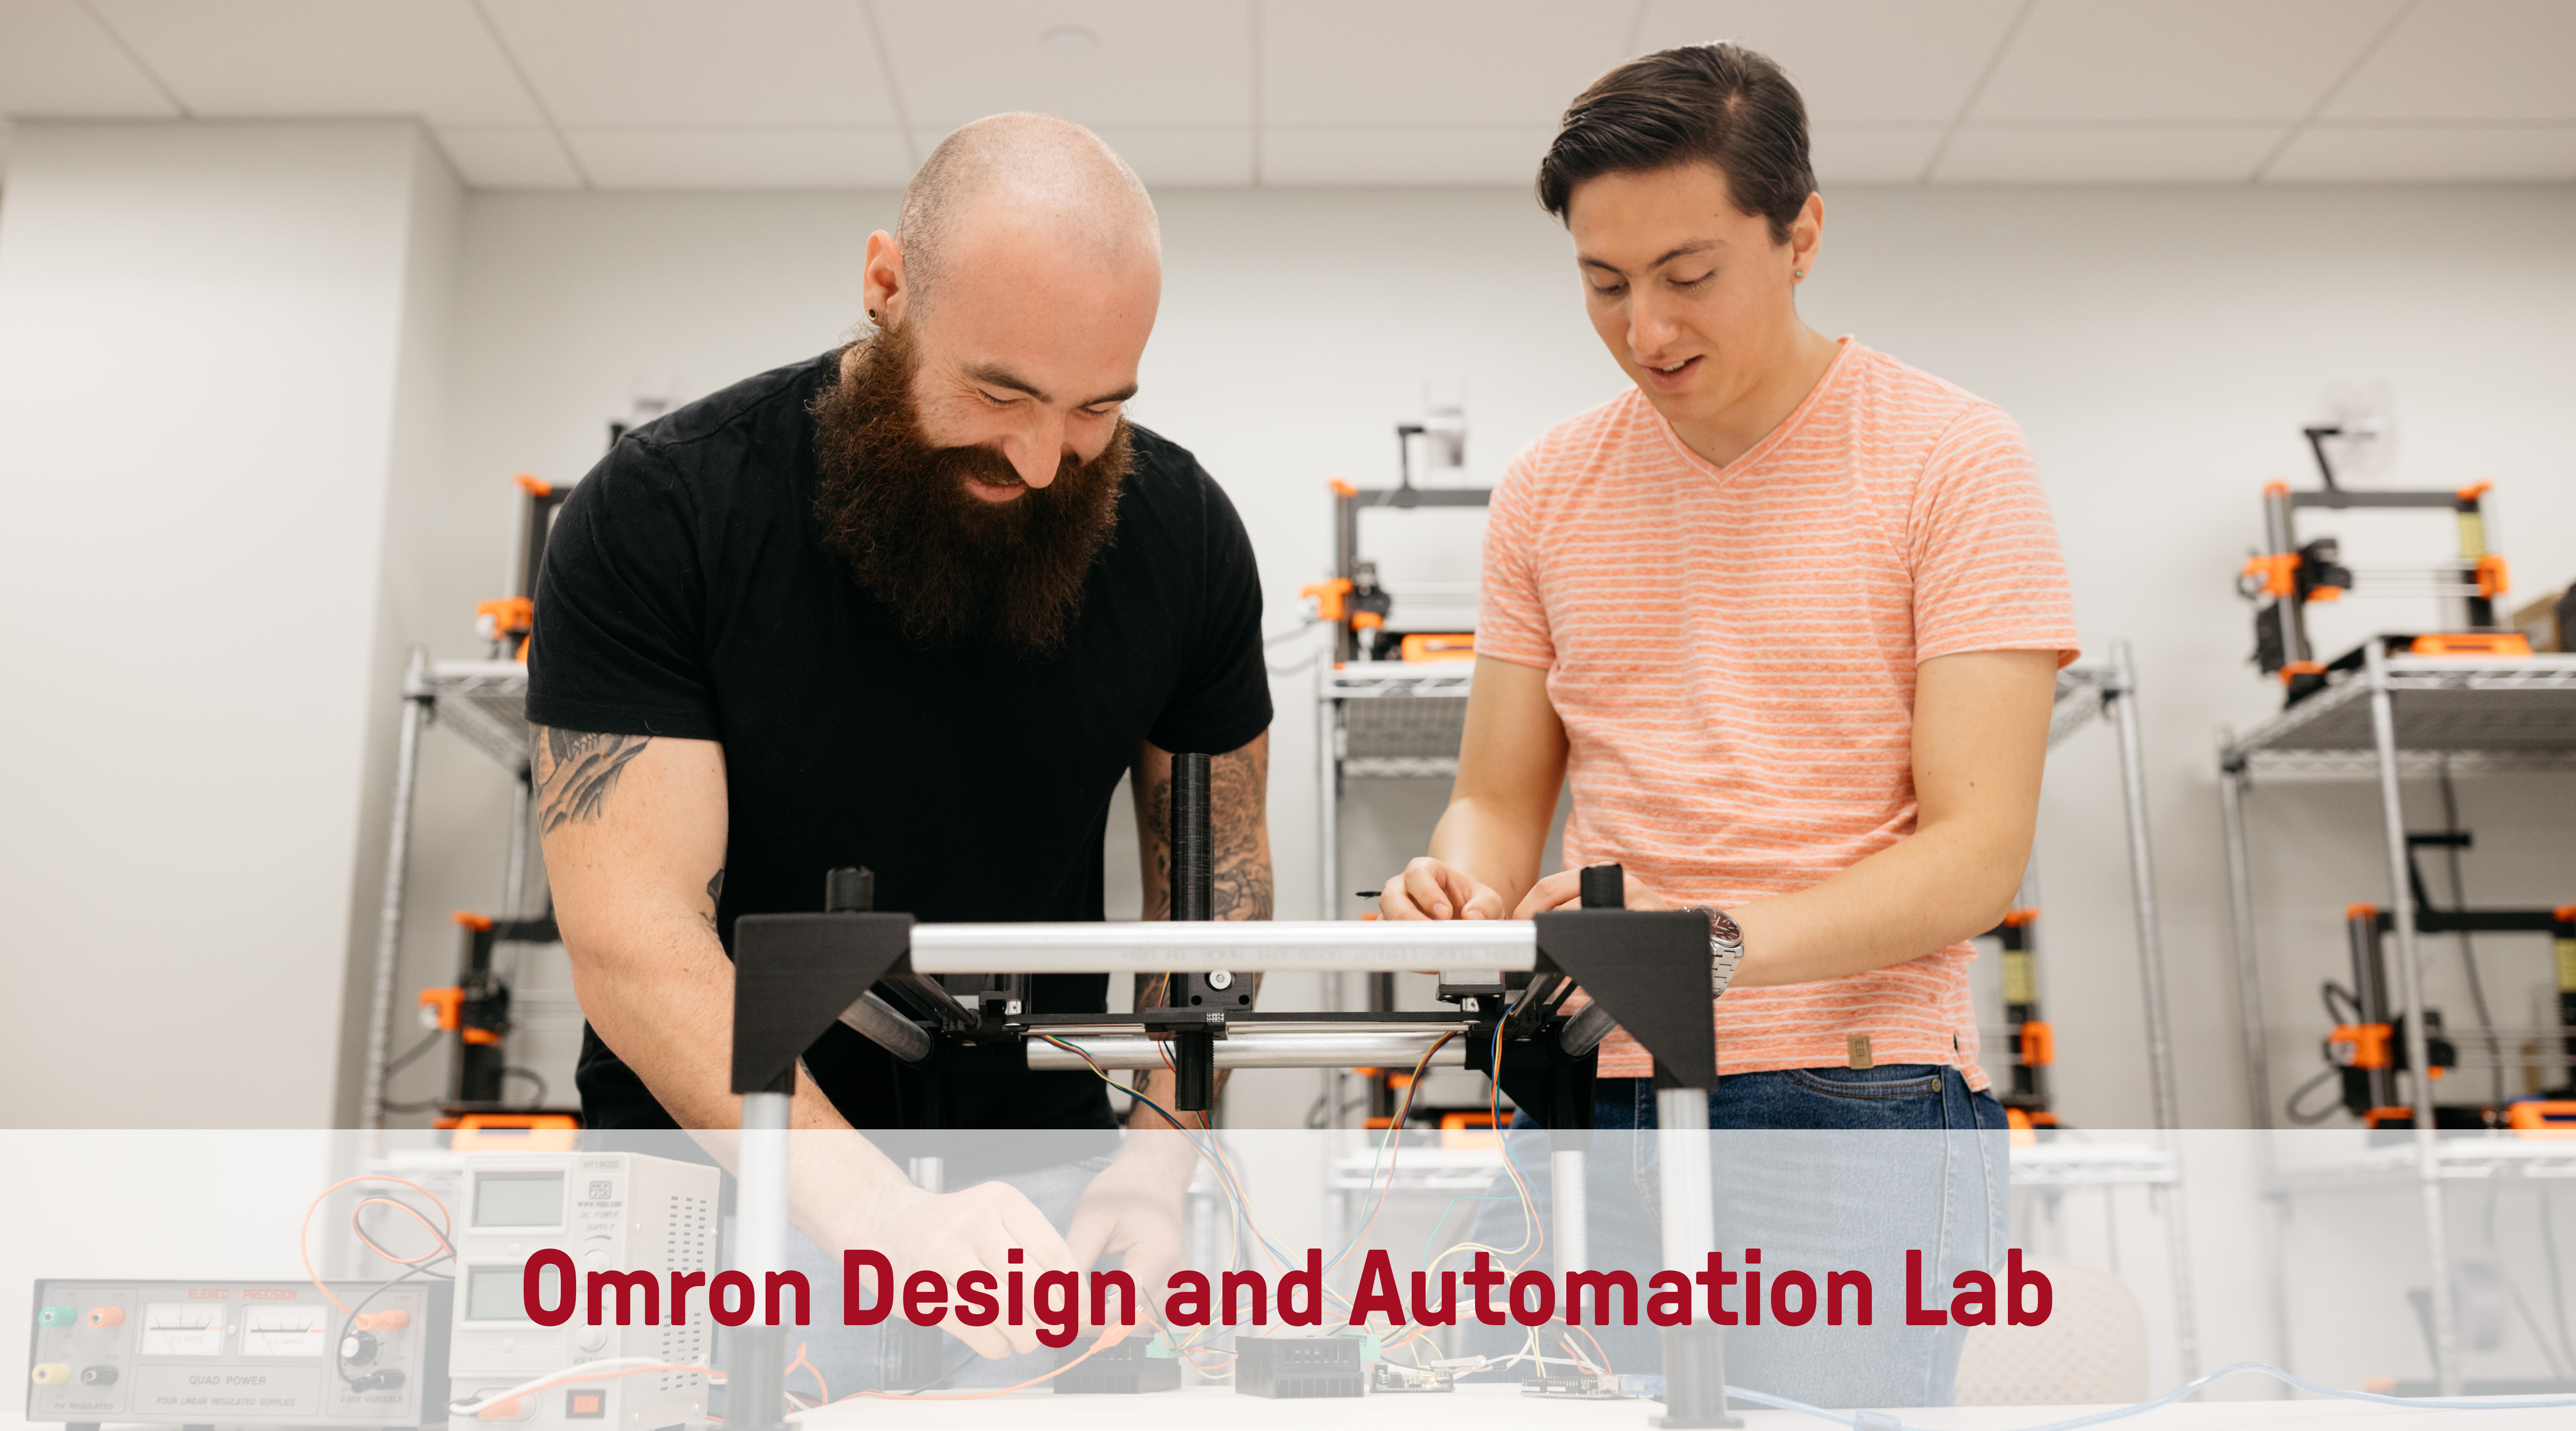 Omron Design and Automation Lab